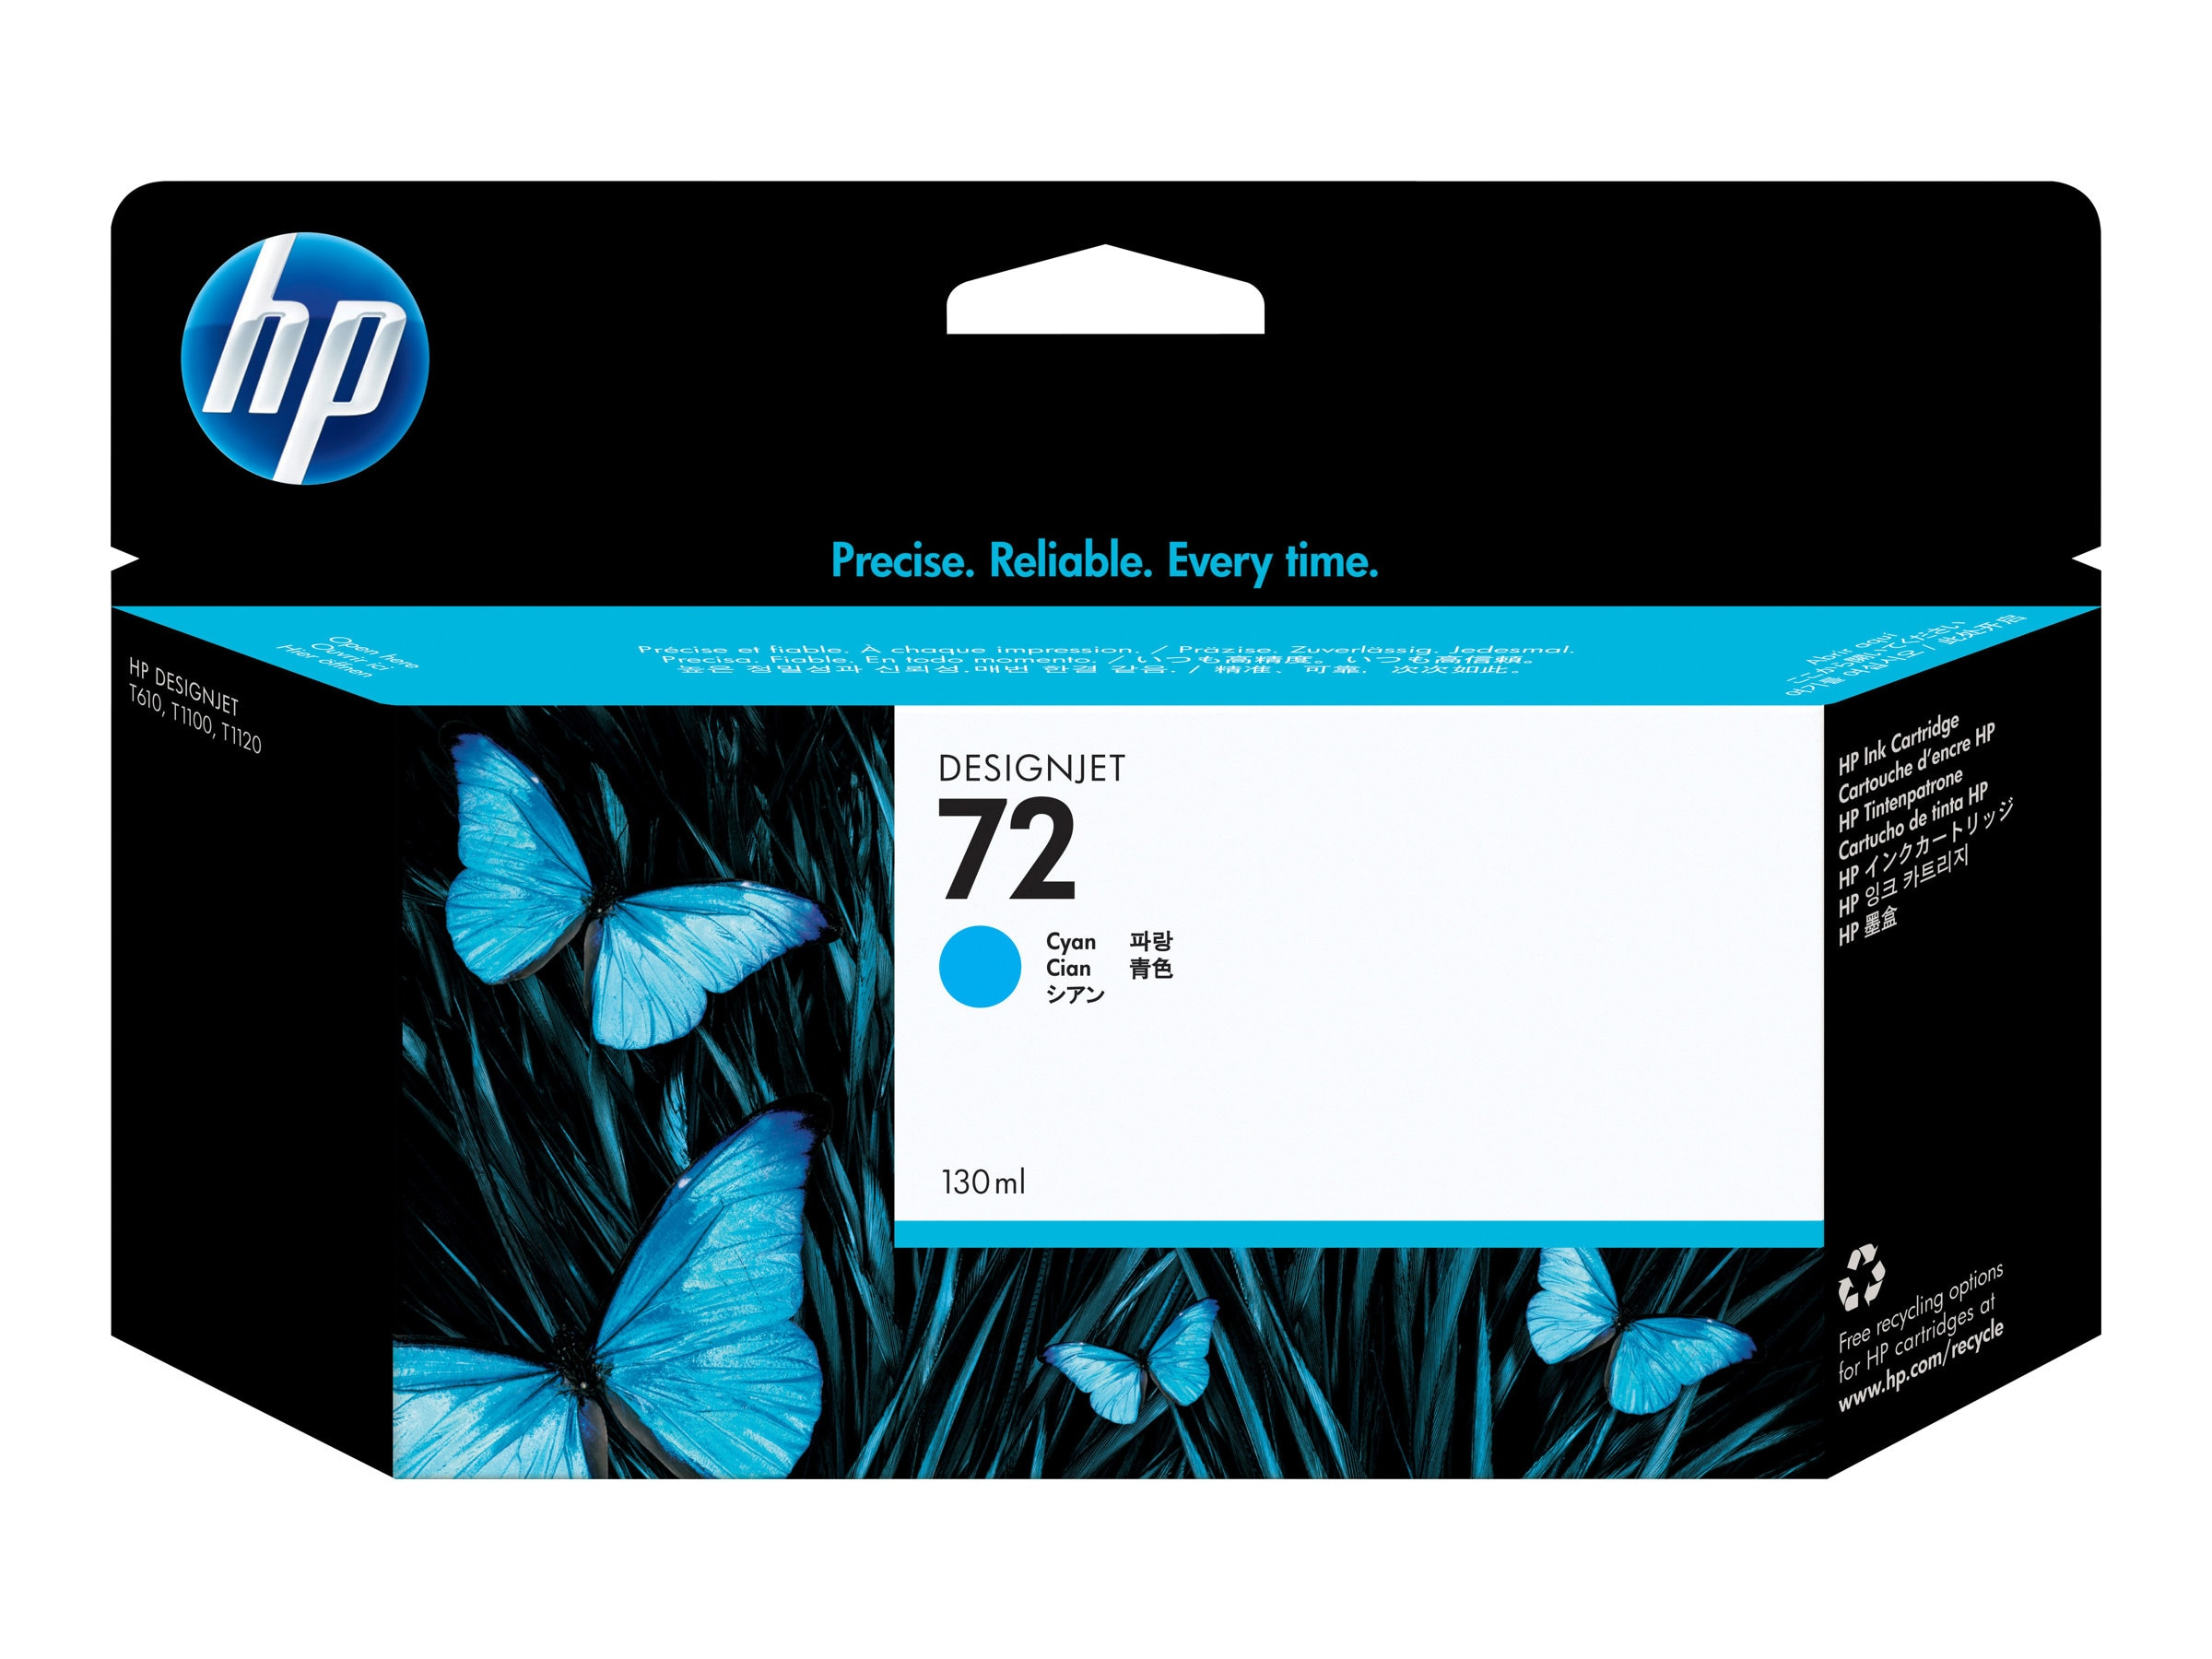 HP 72 Cyan Ink Cartridge (130ml) C9371A